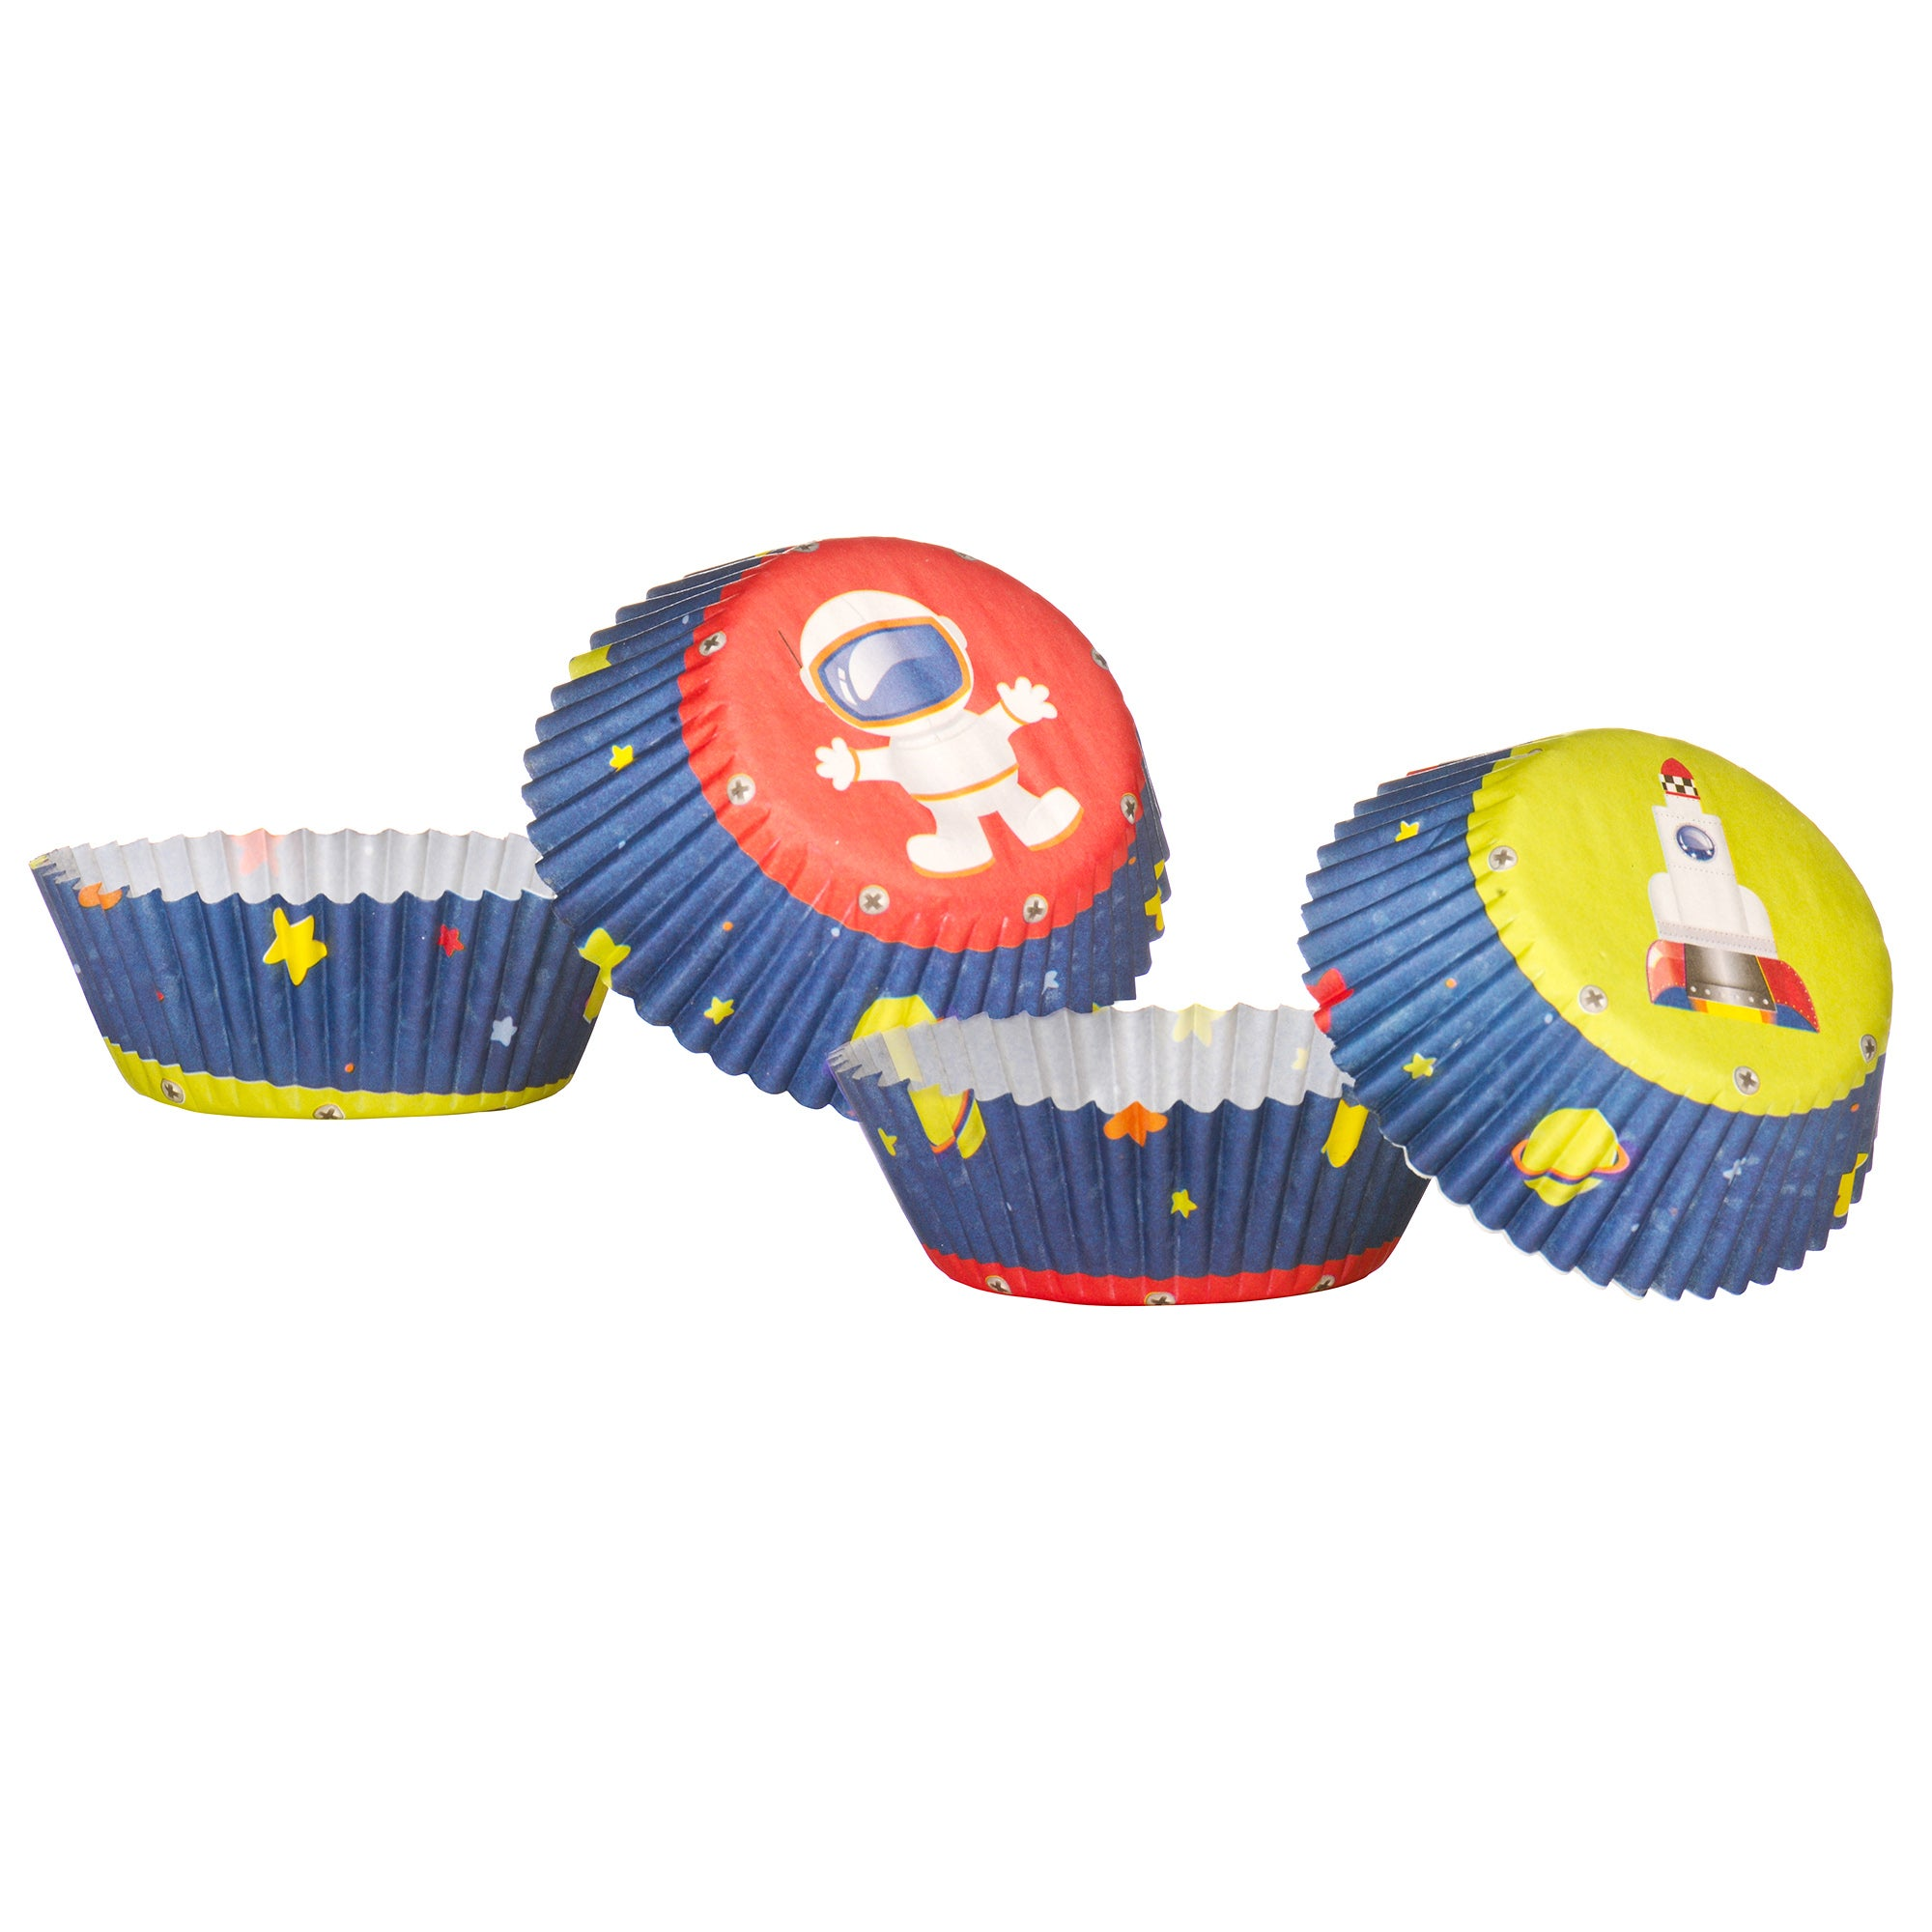 Kids Pack of 60 Medium Rocket Cupcake Cases